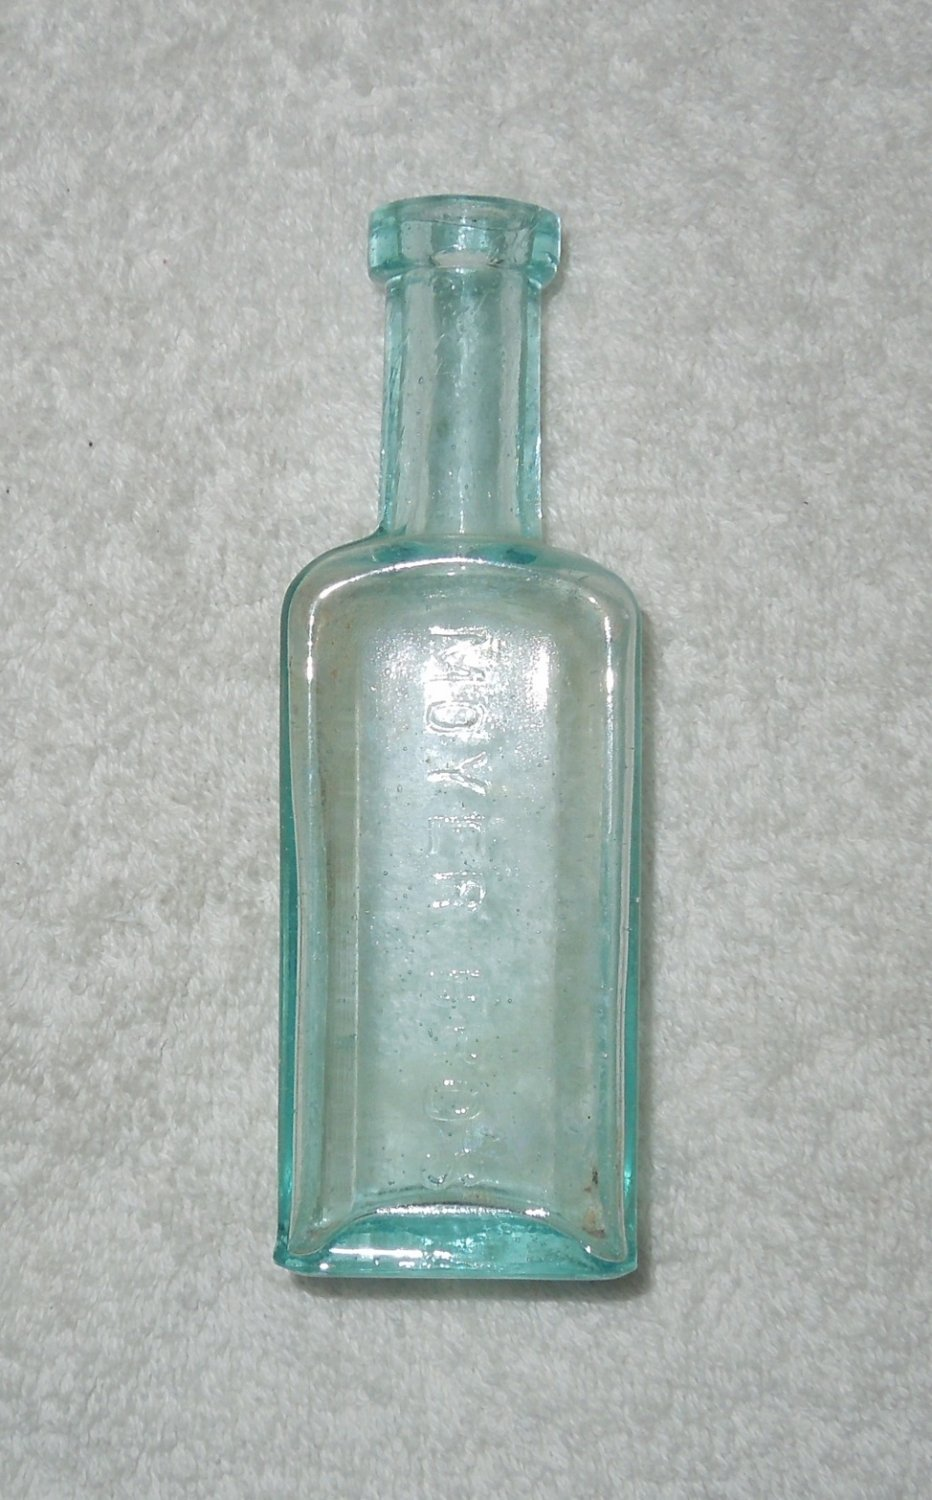 Moyer Bros - Clear Blue Glass Bottle - Small - Cork Missing - Bloomsburg